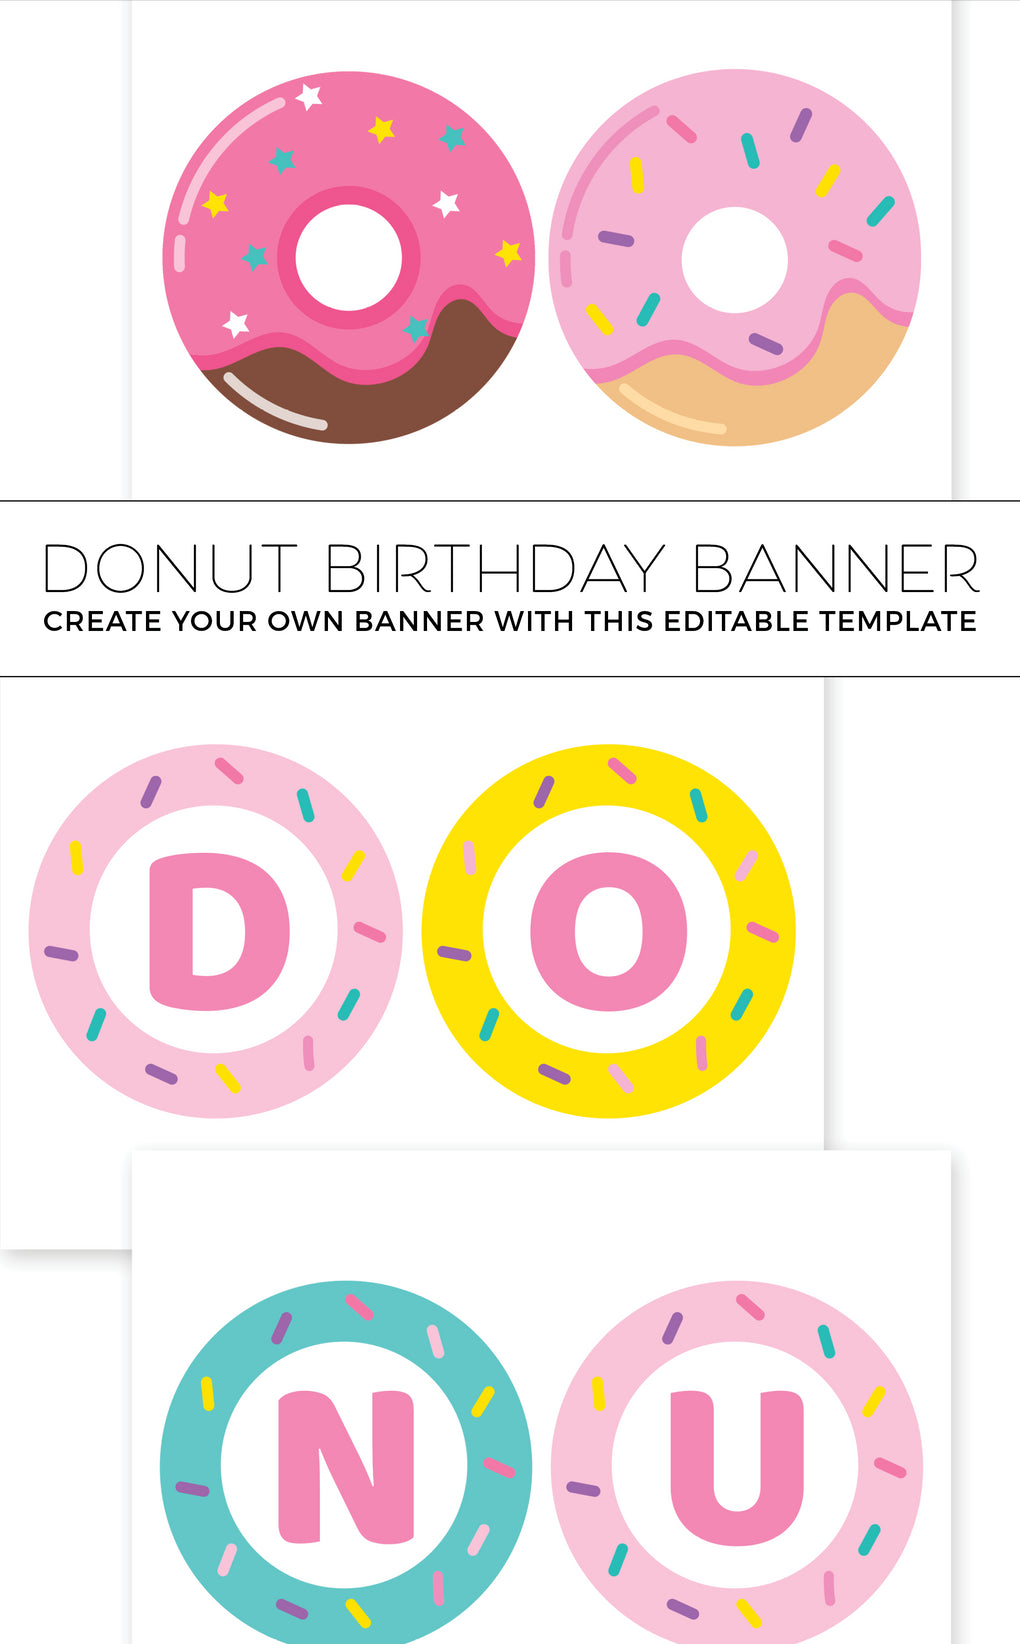 Donut birthday party banner for kids, pink, yellow and teal